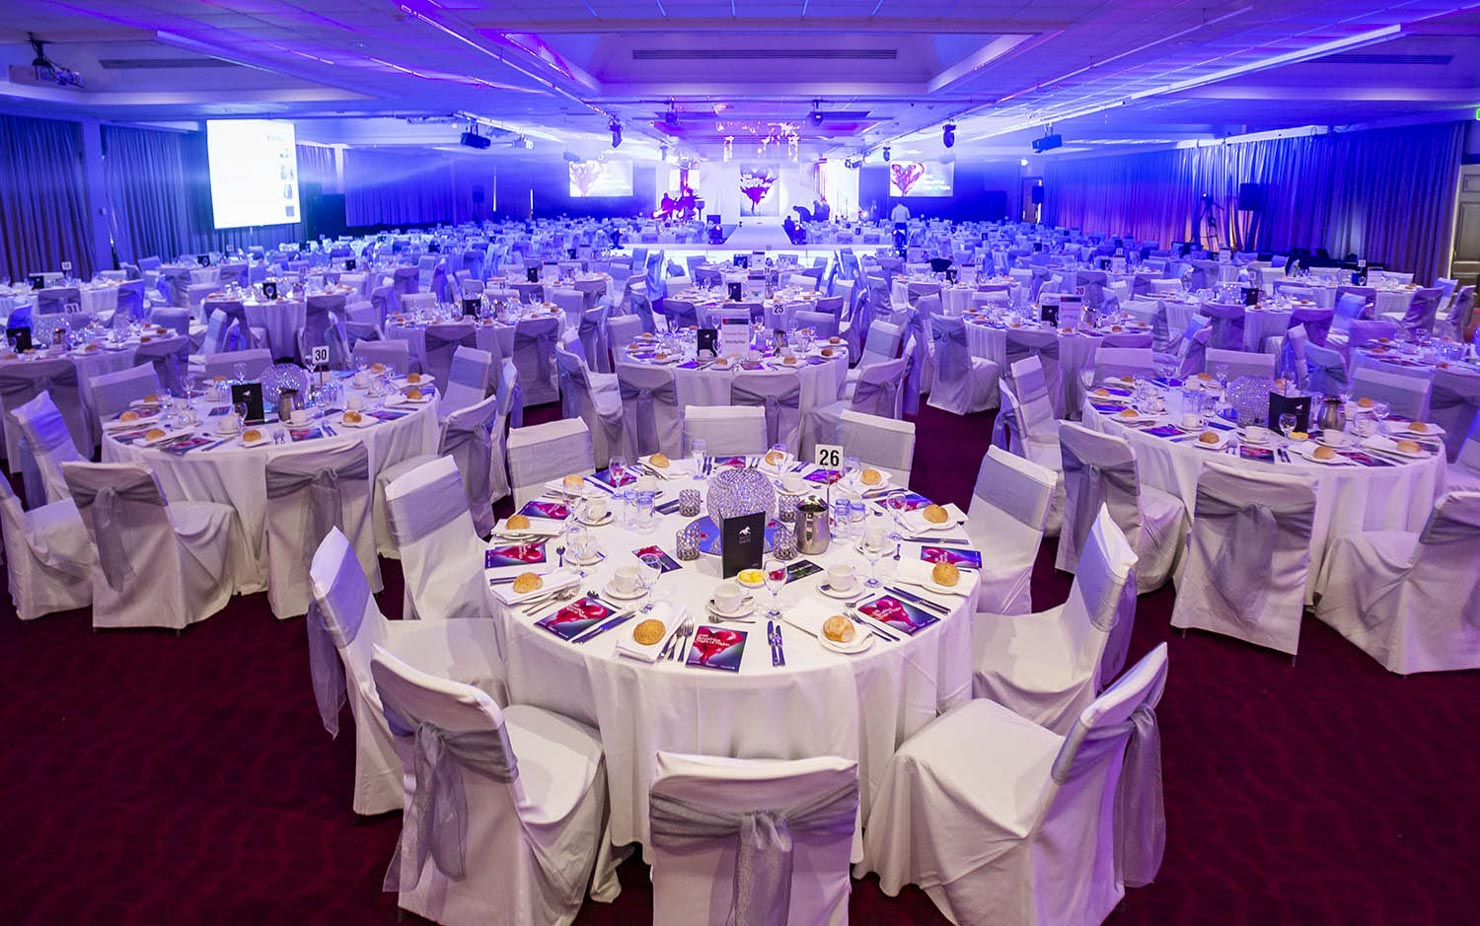 Tables set for Gala event